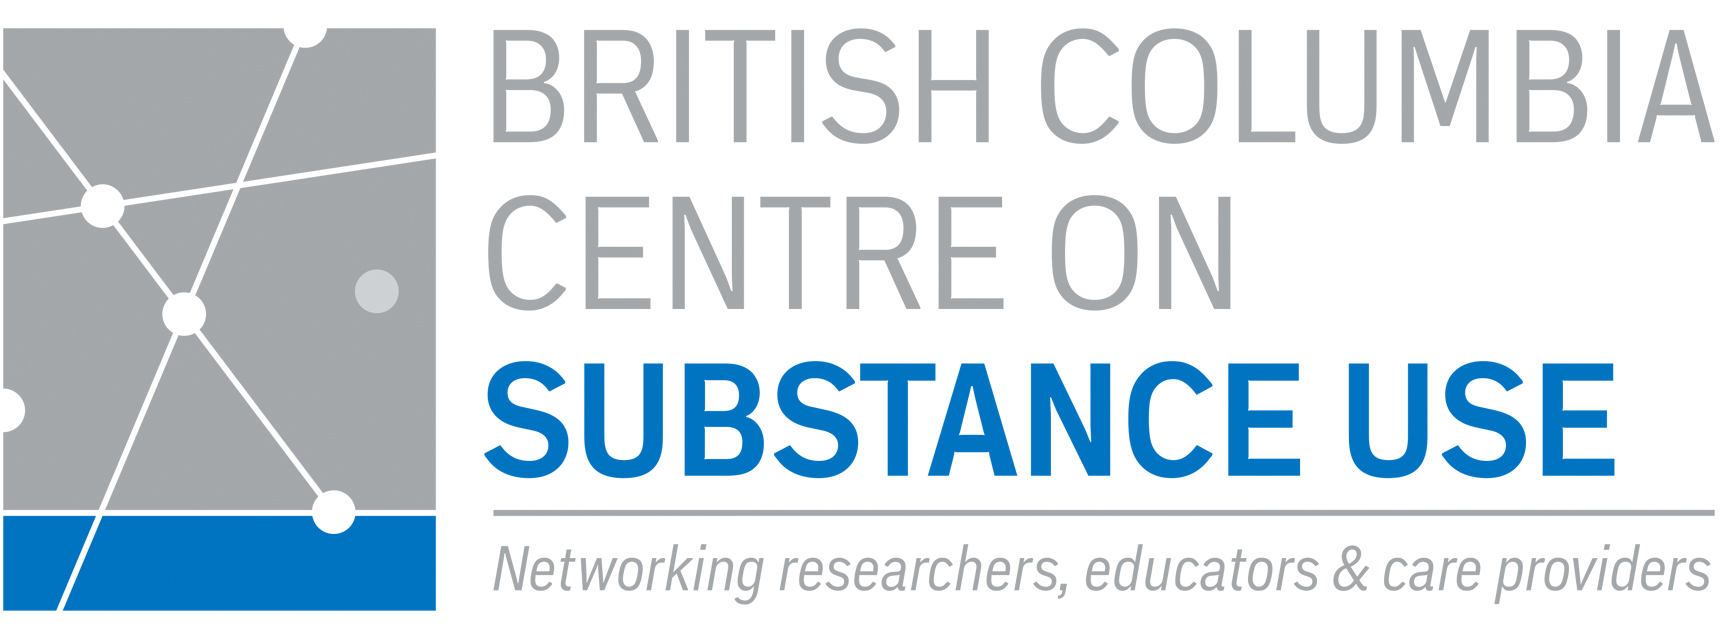 BC Centre on Substance Use